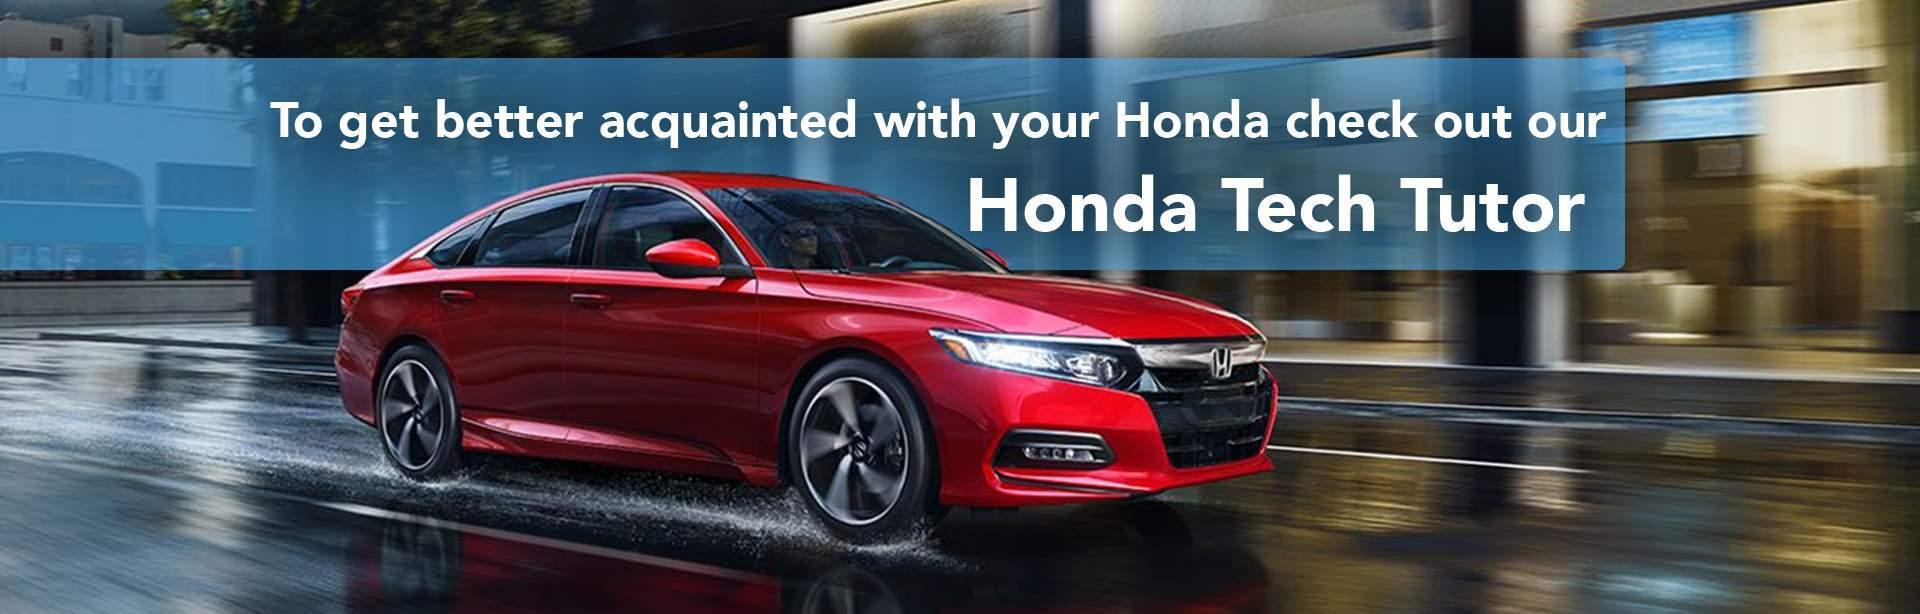 Honda Tech Tutor